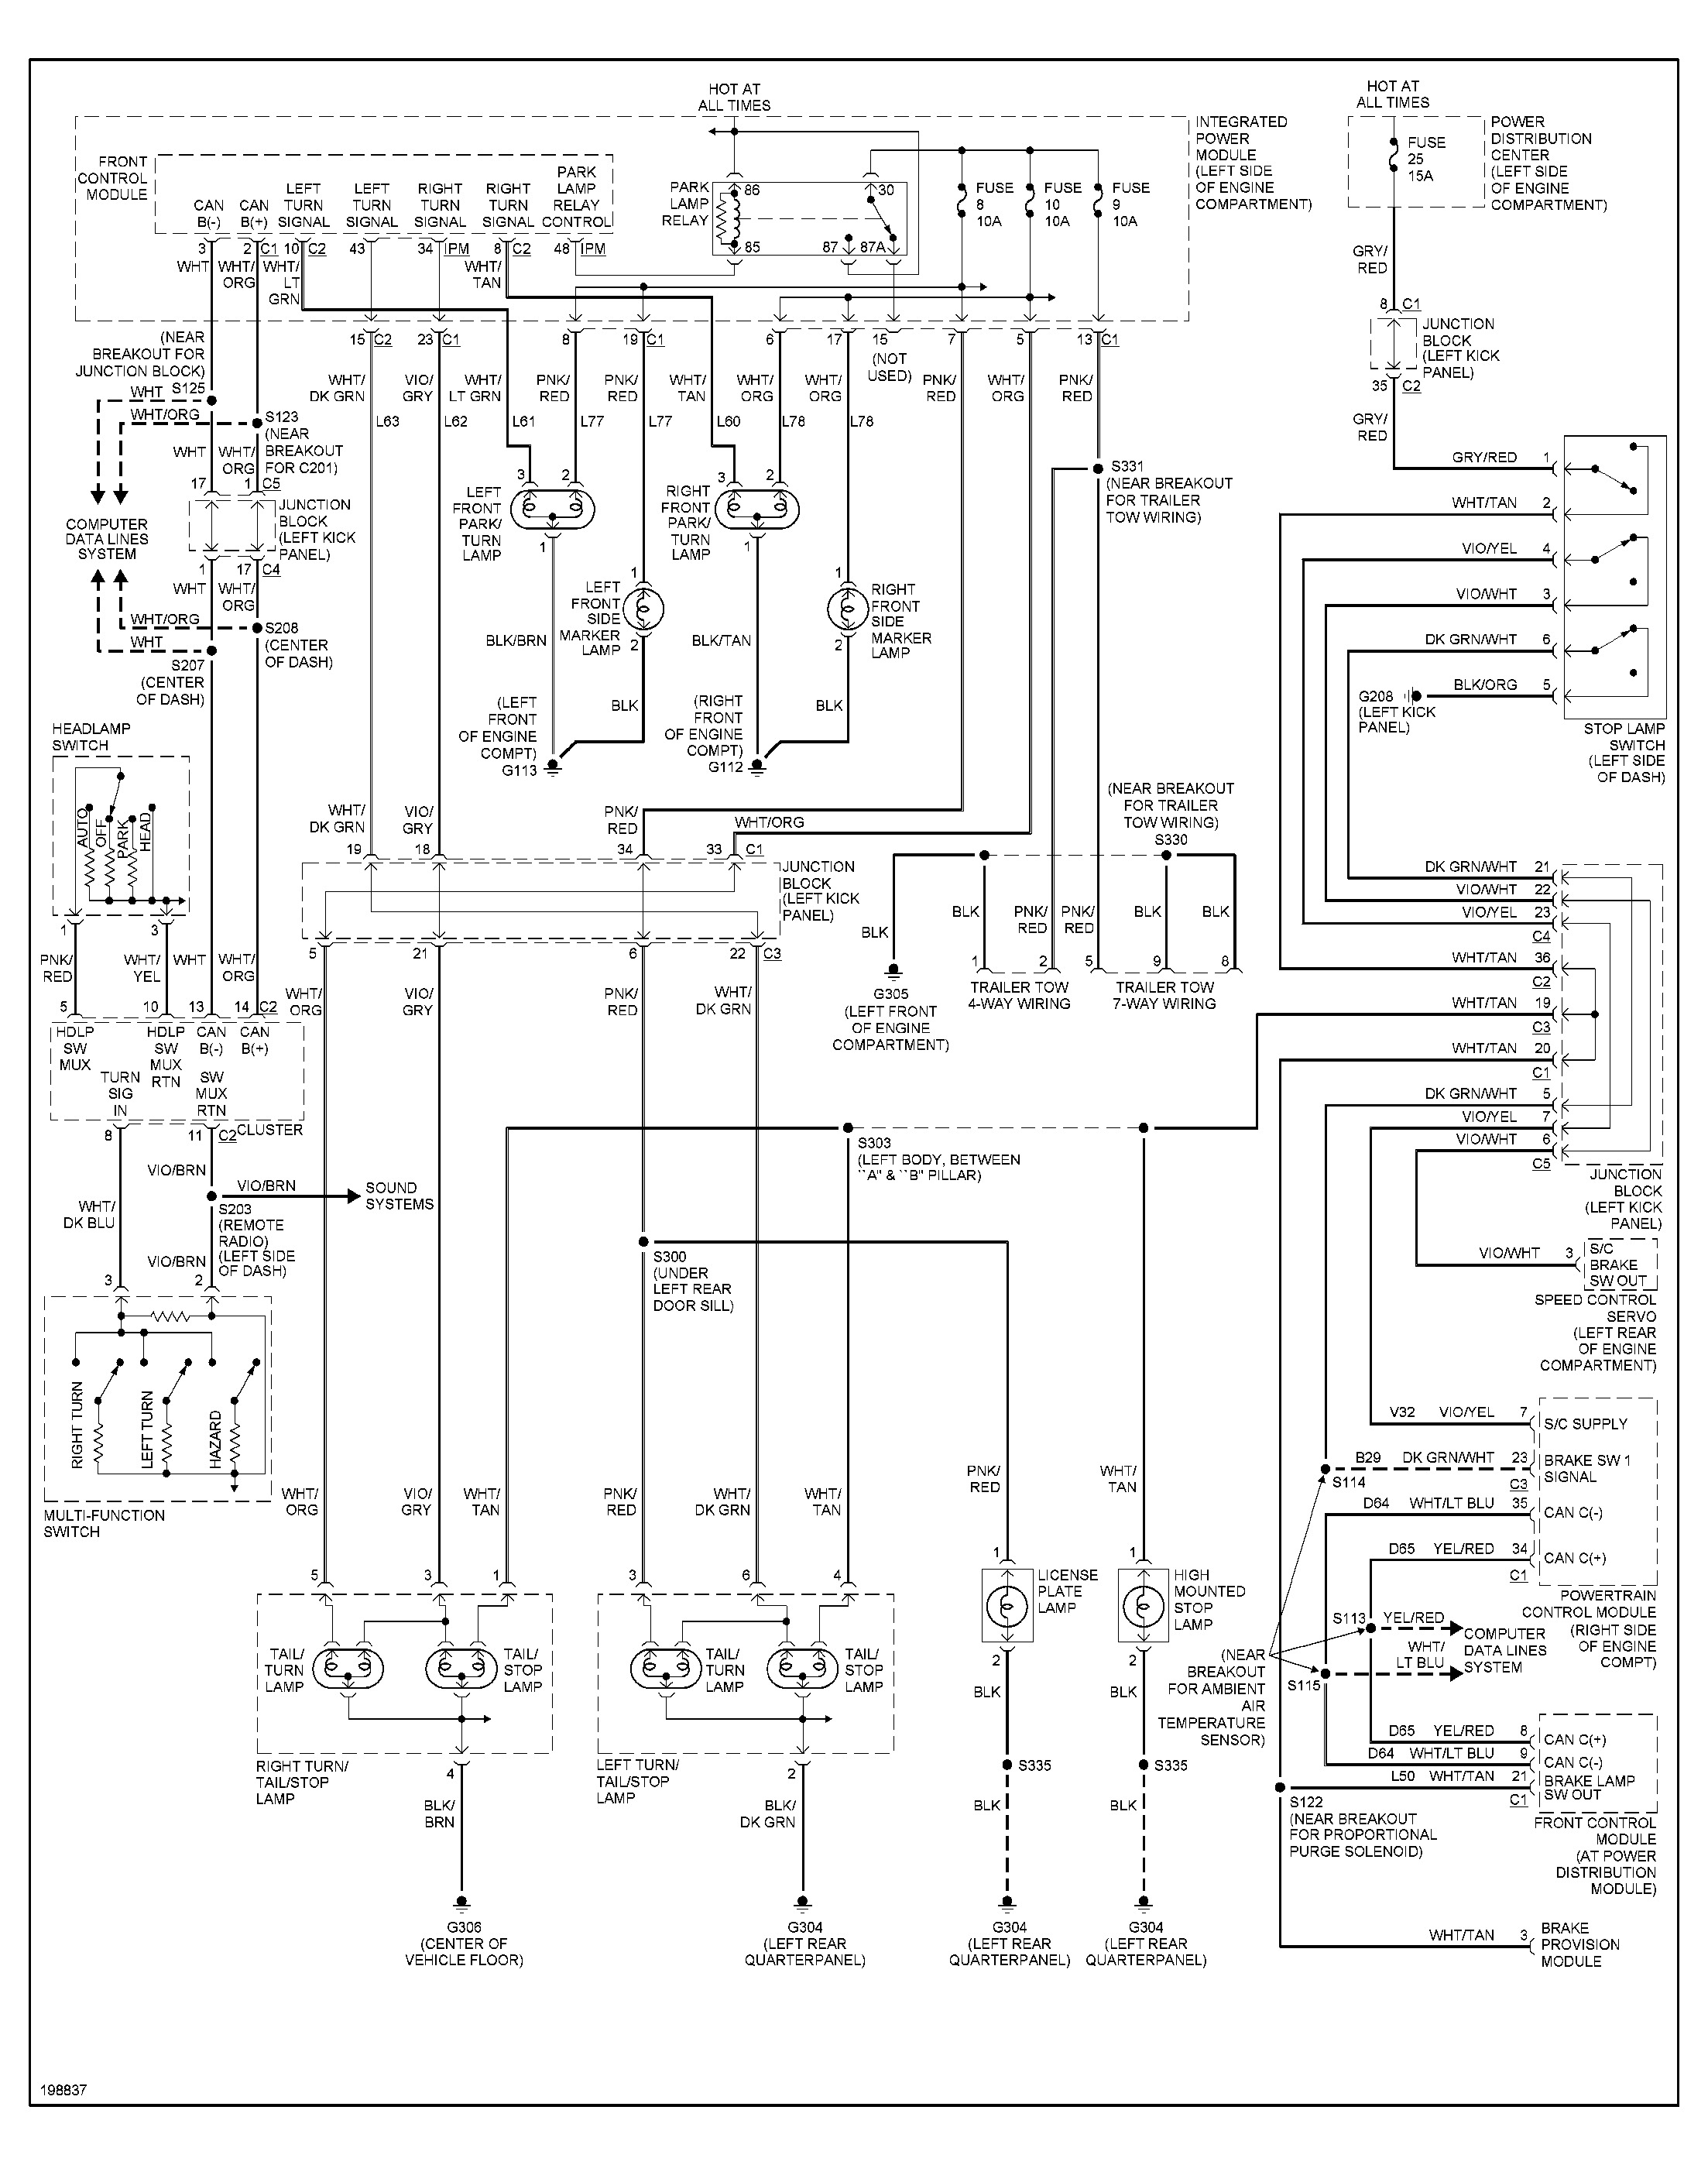 diagram] 2015 durango wiring diagram full version hd quality wiring diagram  - libredatabase.k-danse.fr  k-danse.fr